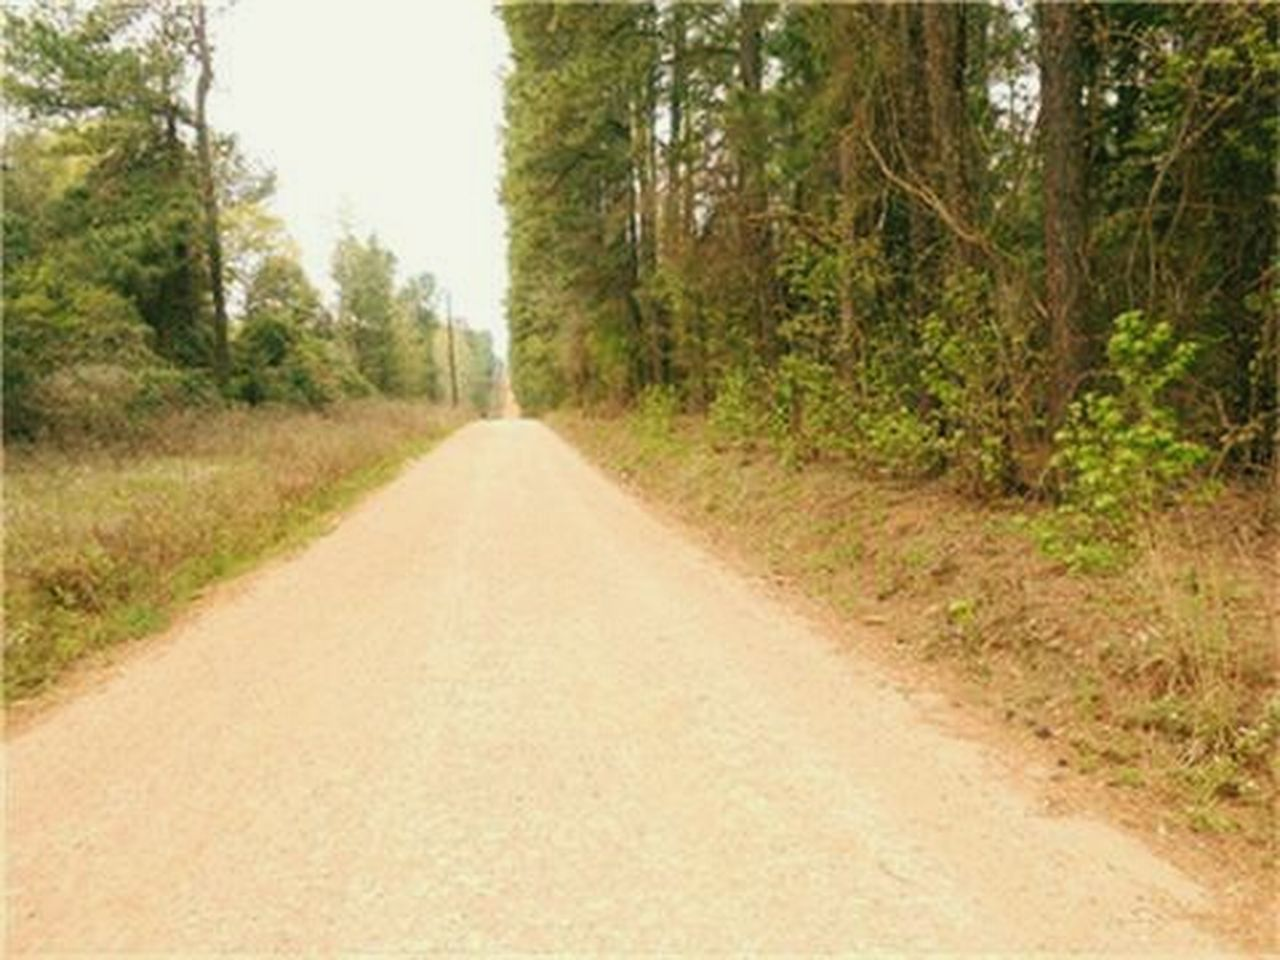 road, dirt road, tree, nature, rural scene, single lane road, forest, no people, summer, scenics, the way forward, outdoors, landscape, day, straight